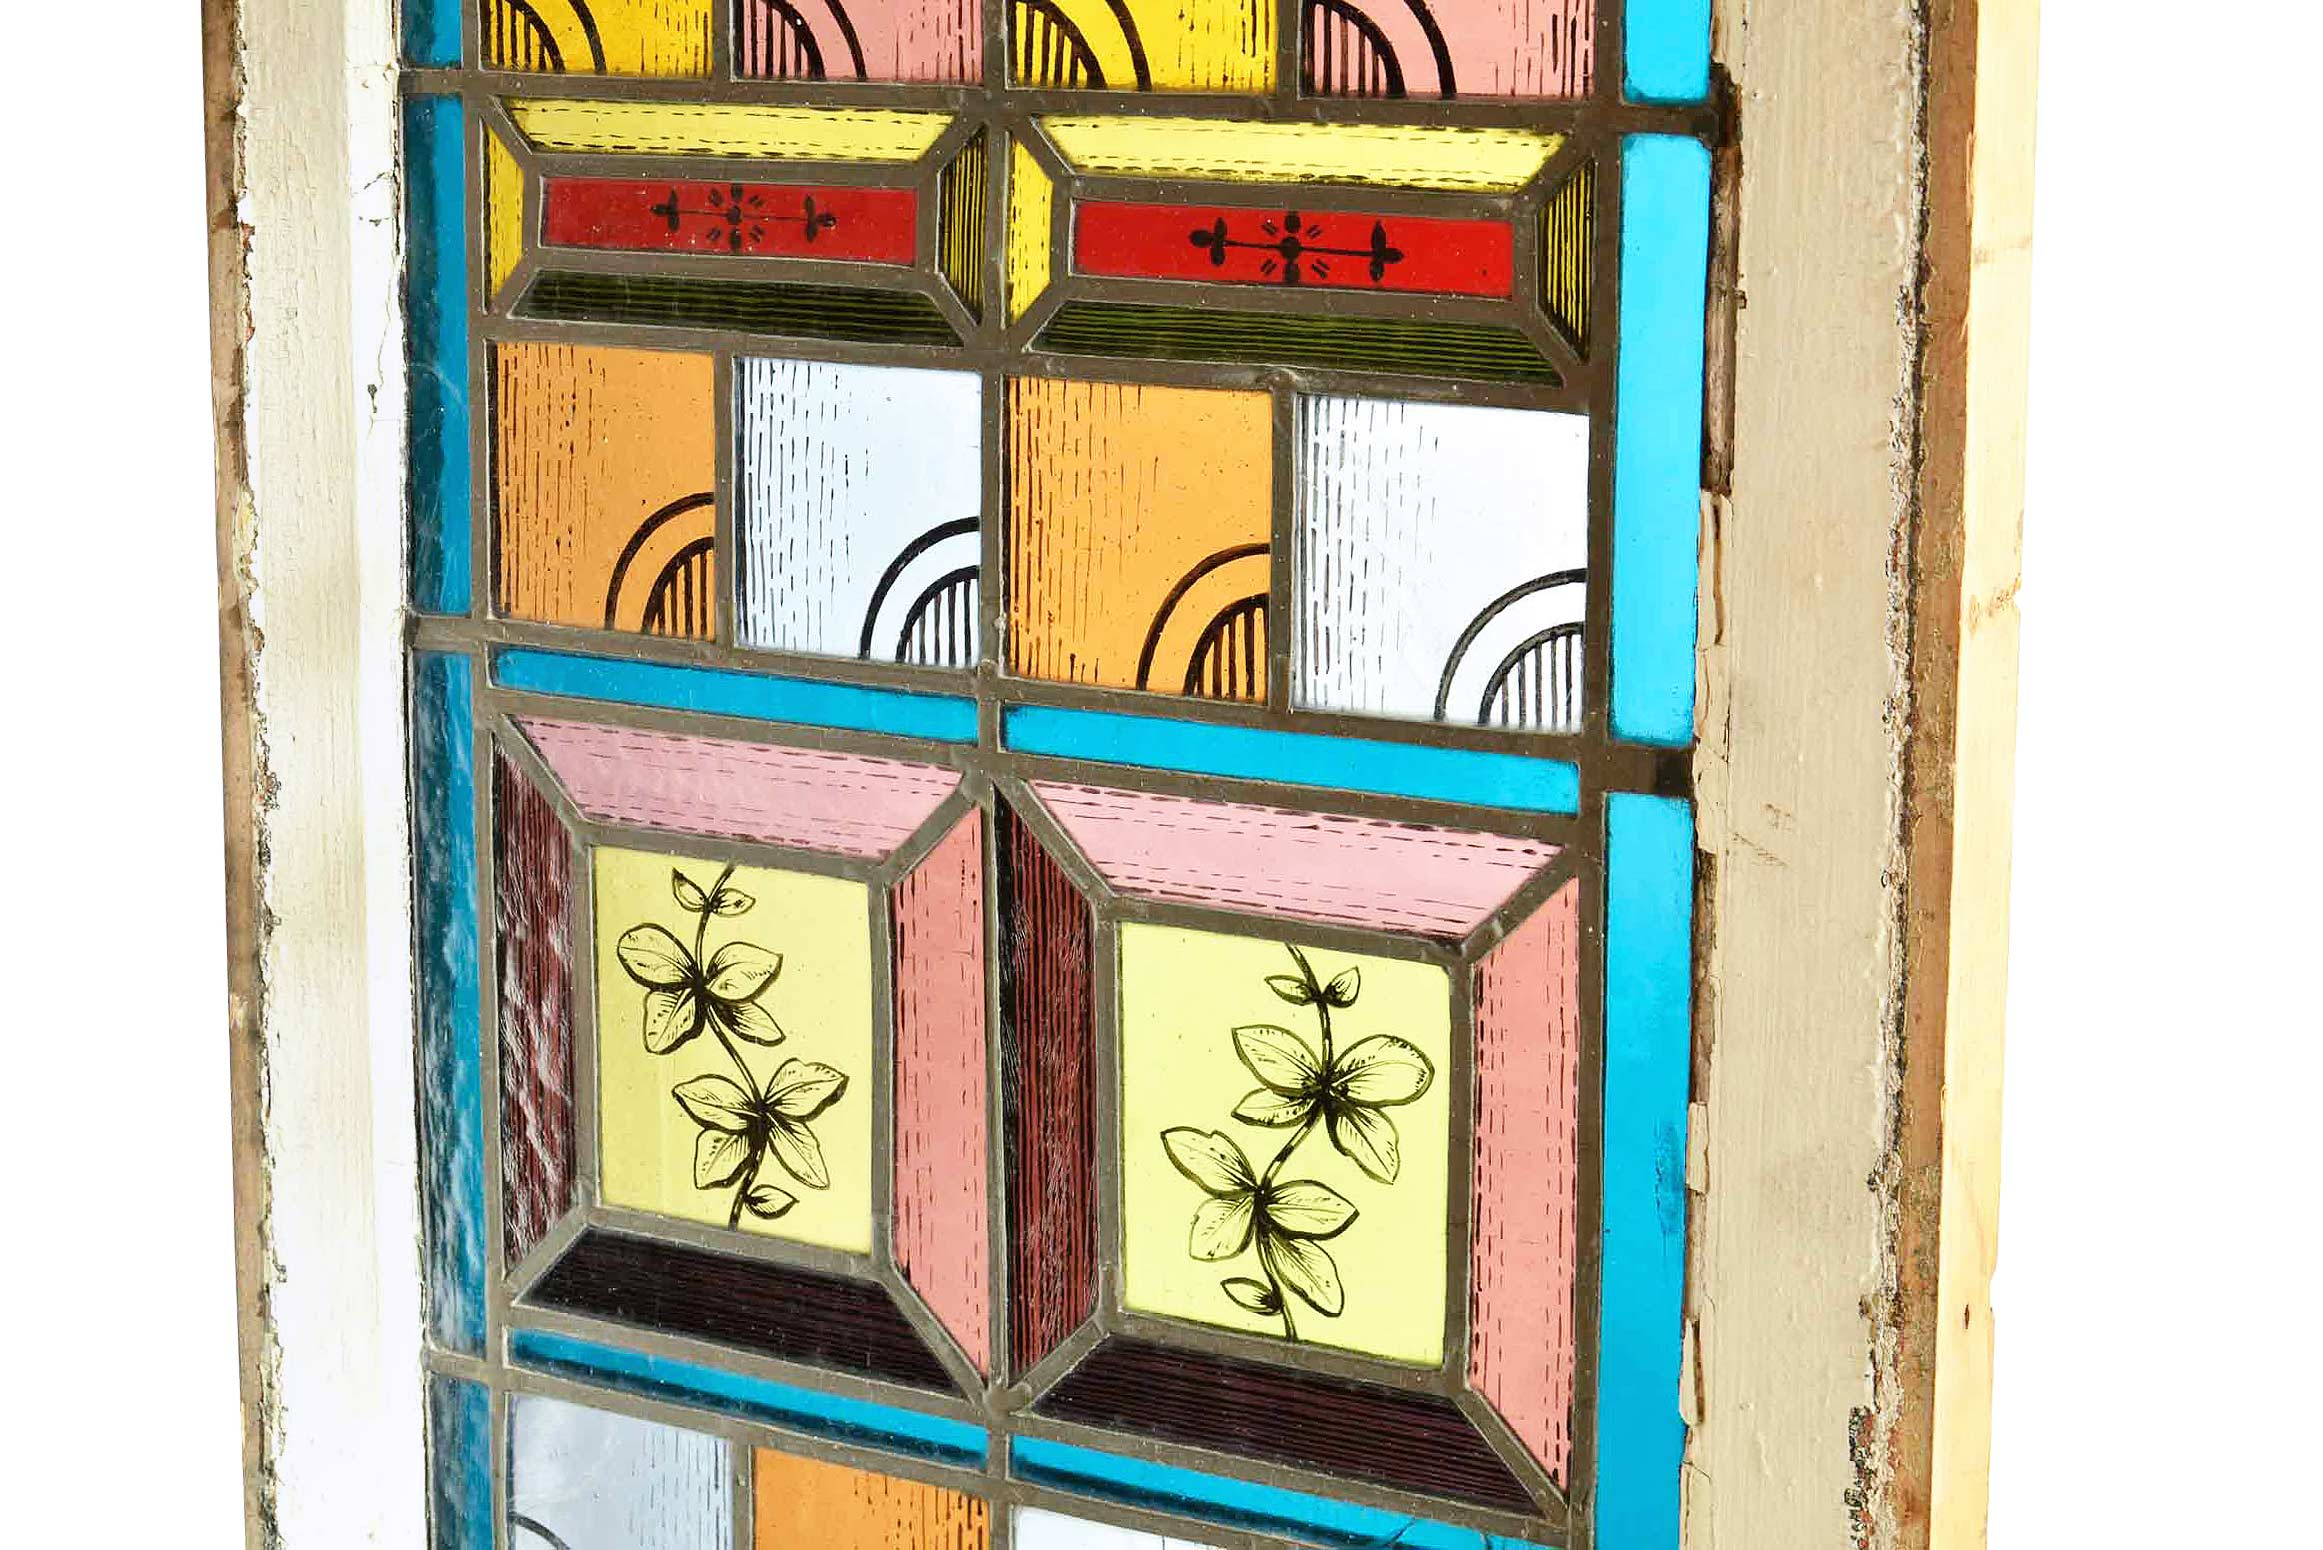 46018-stained-glass-window-detail.jpg